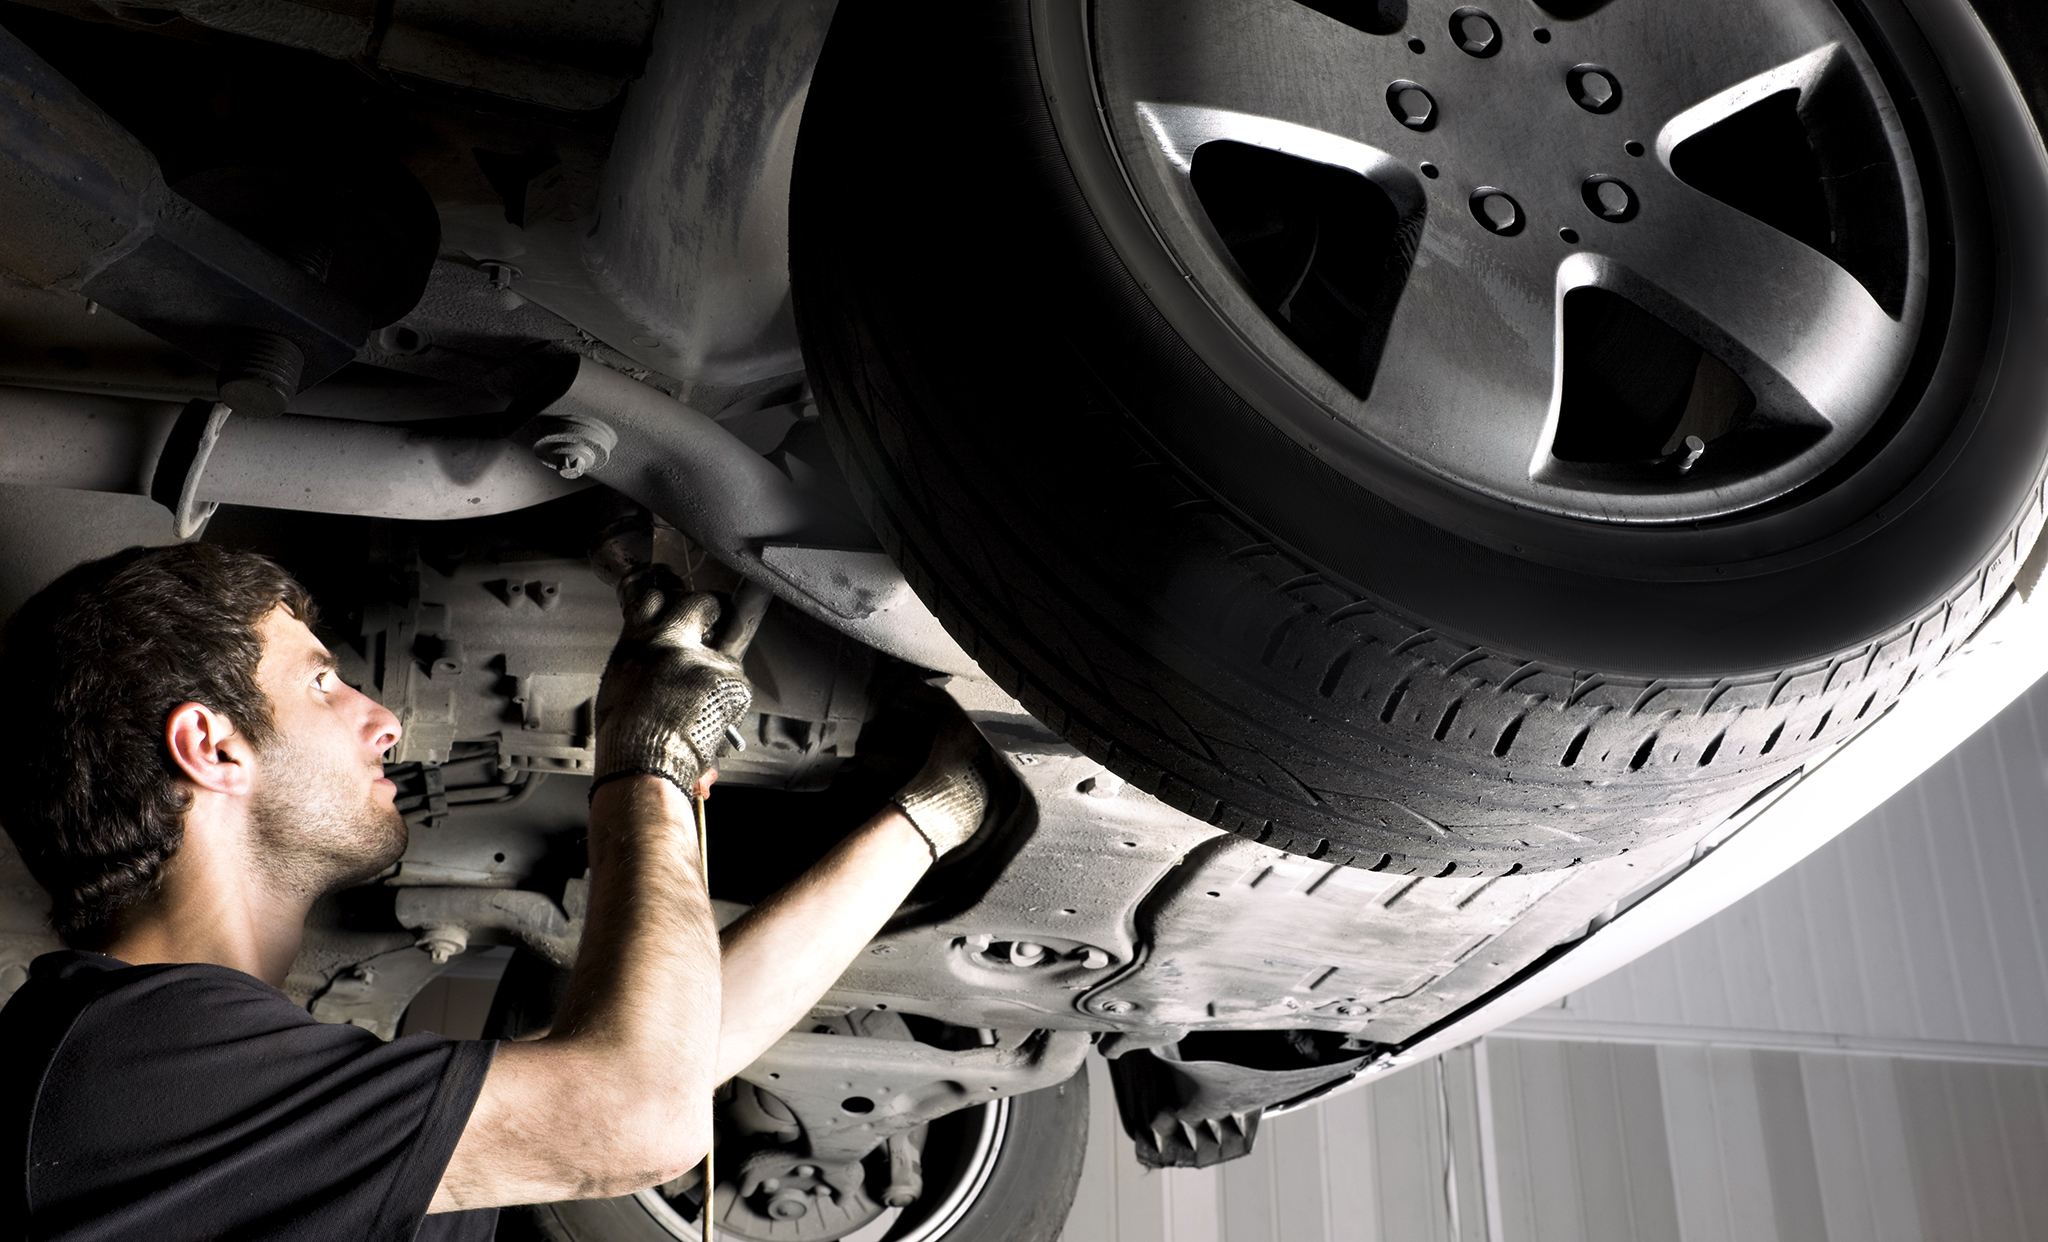 Los Angeles Auto-Repair Shops and LA Traffic: A Hollywood Love Story